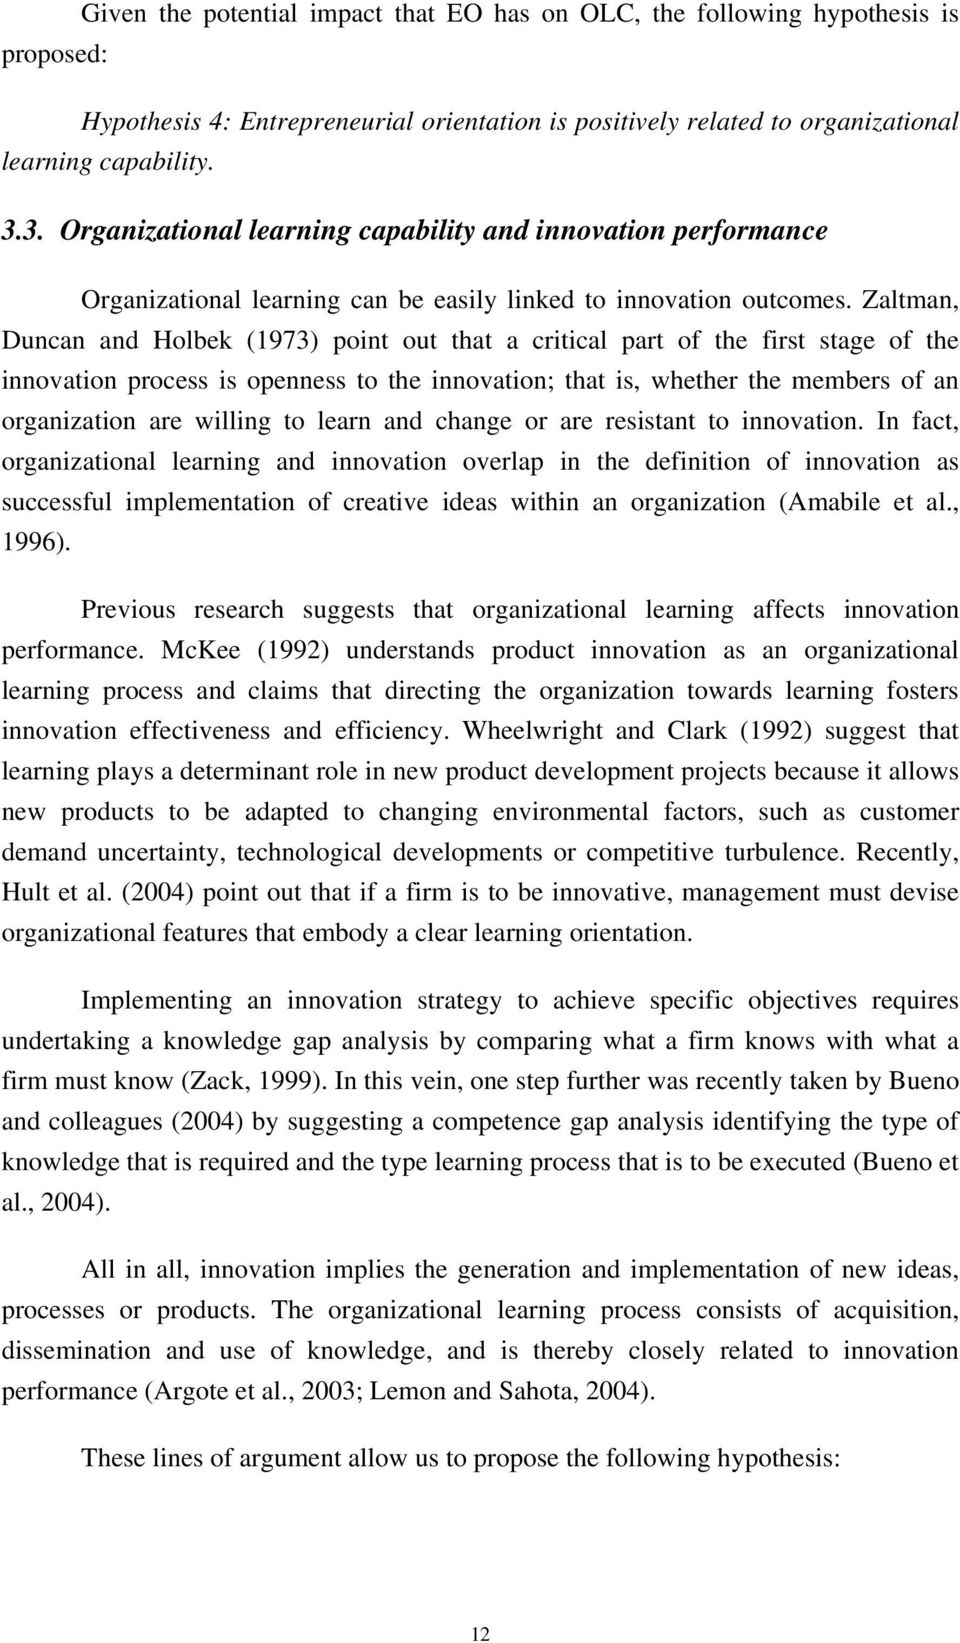 Zaltman, Duncan and Holbek (1973) point out that a critical part of the first stage of the innovation process is openness to the innovation; that is, whether the members of an organization are